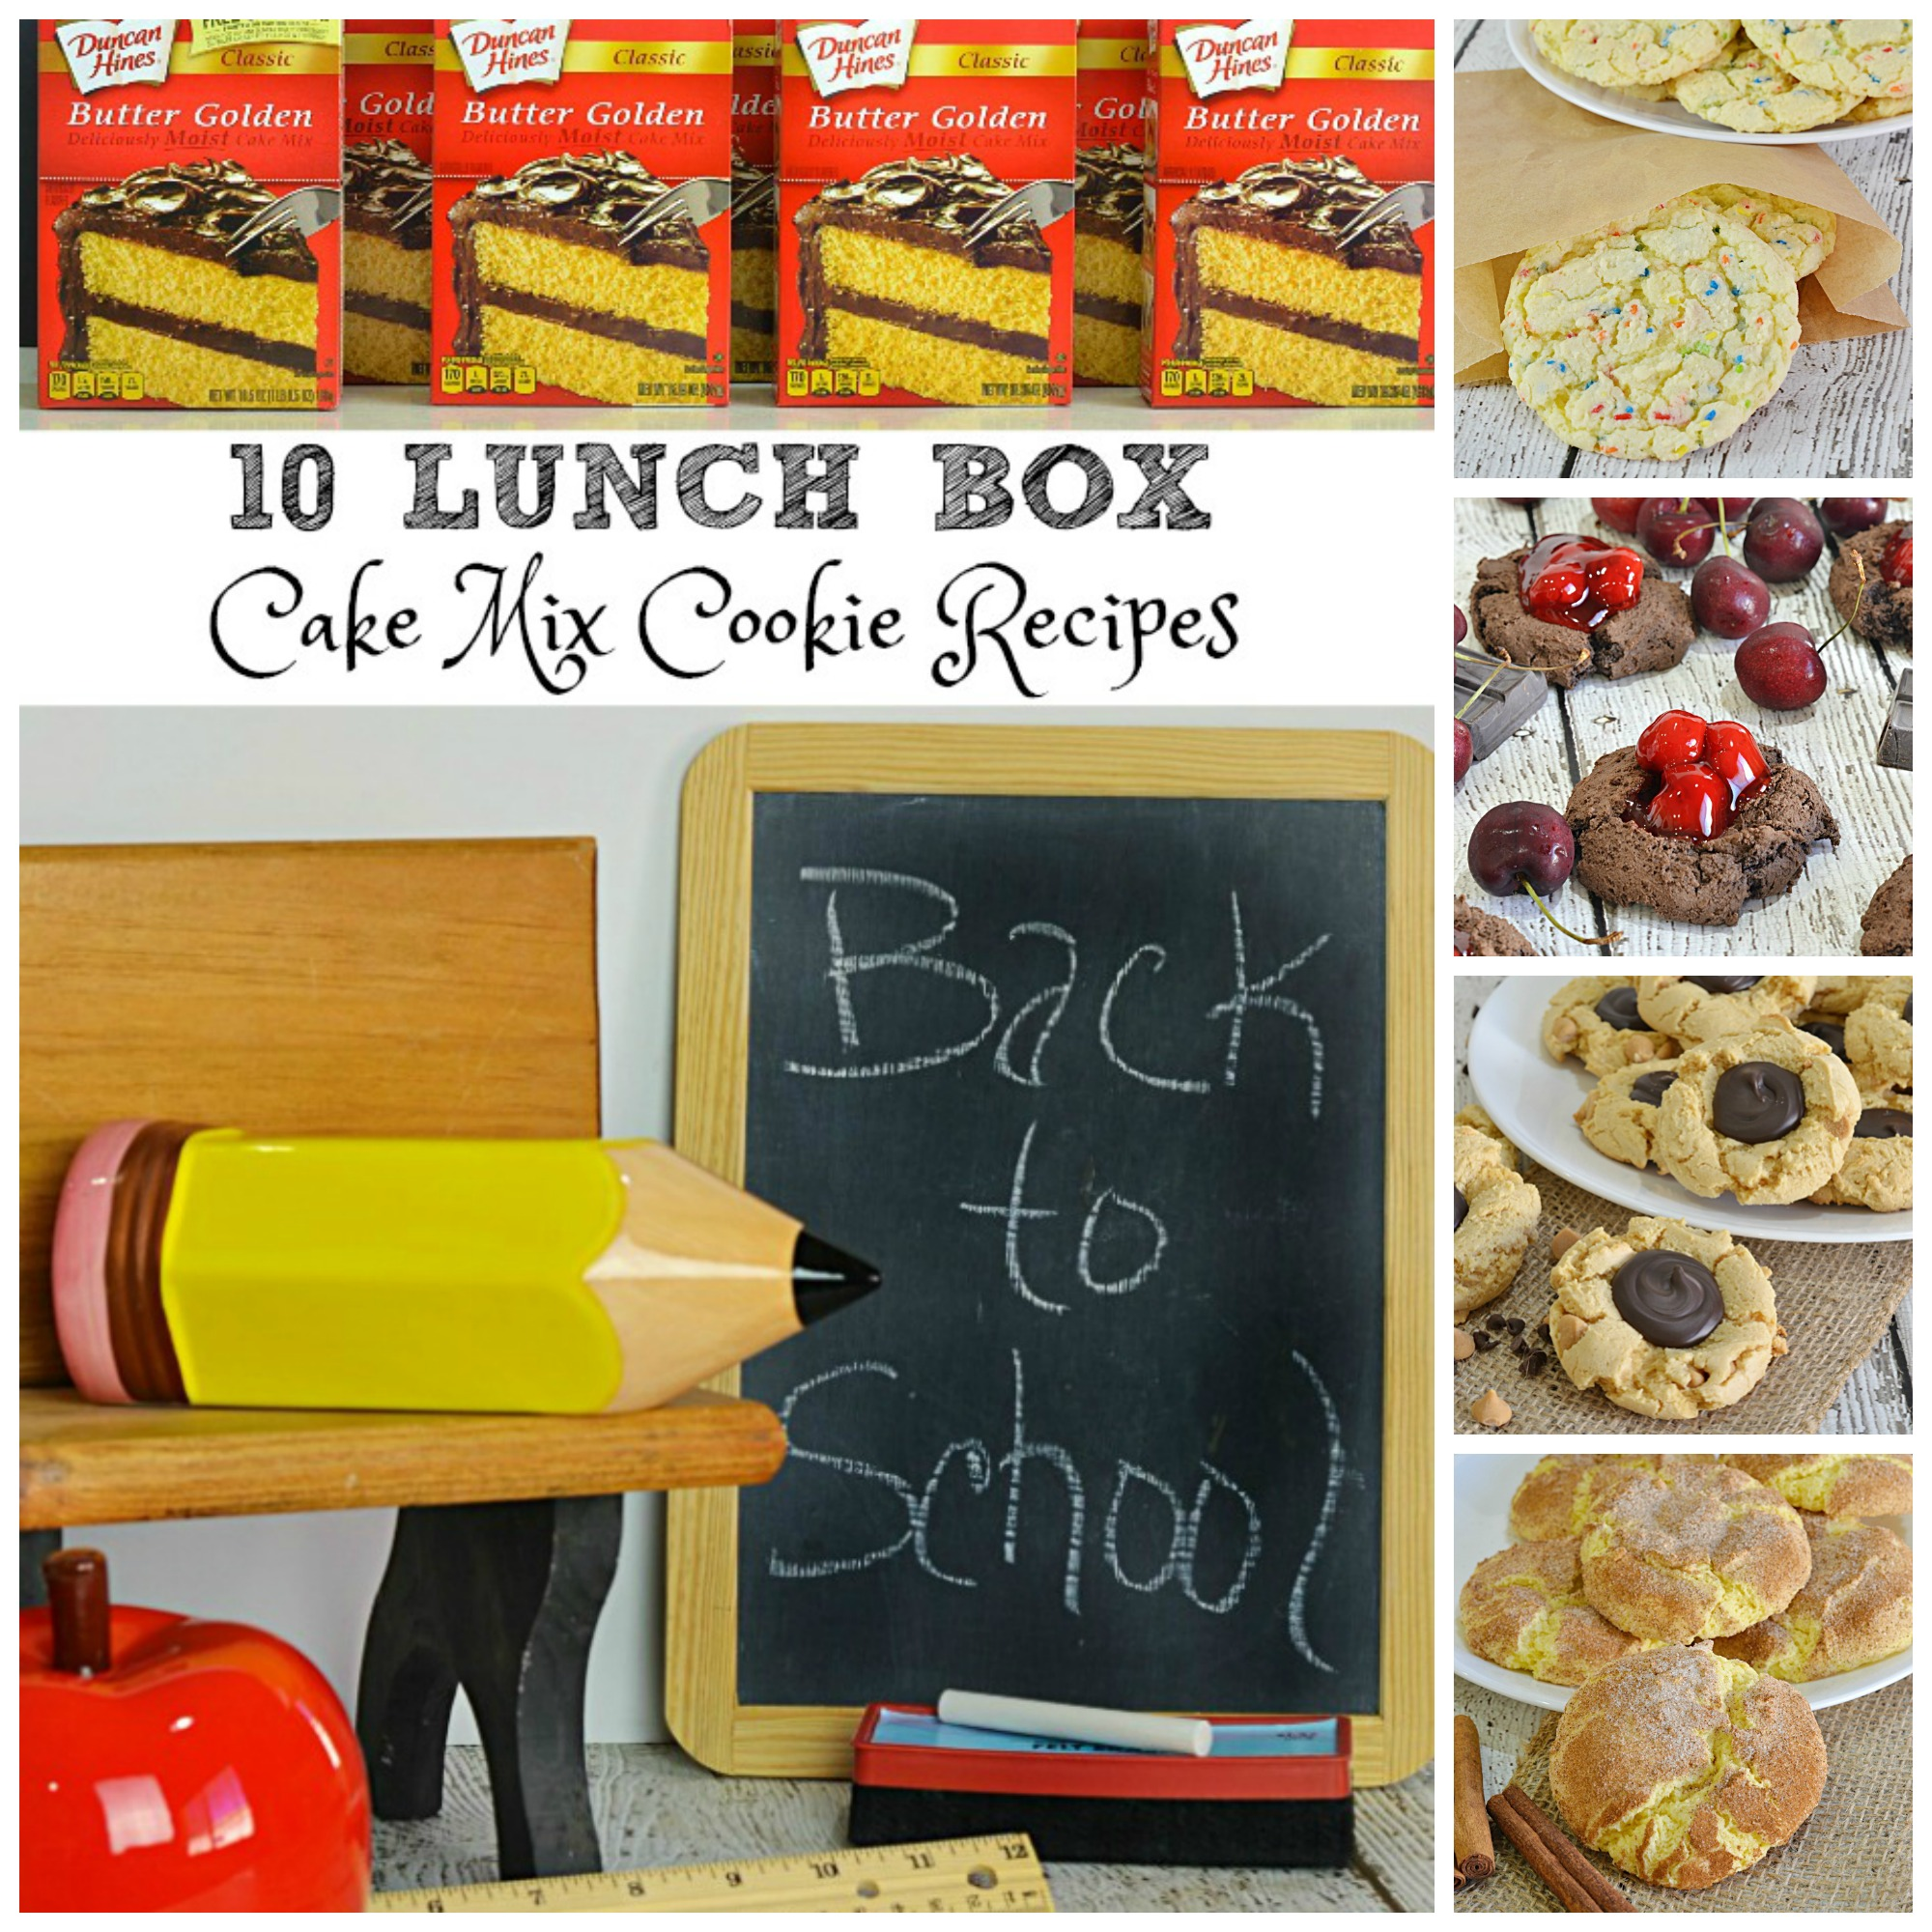 10 Lunch Box Cake Mix Cookie Recipes | Whether you're packing lunch for the kids, yourself or the hubs you are sure to find a cookie recipe everyone will love. The good news is... ALL these cookie recipes are made with a cake mix!